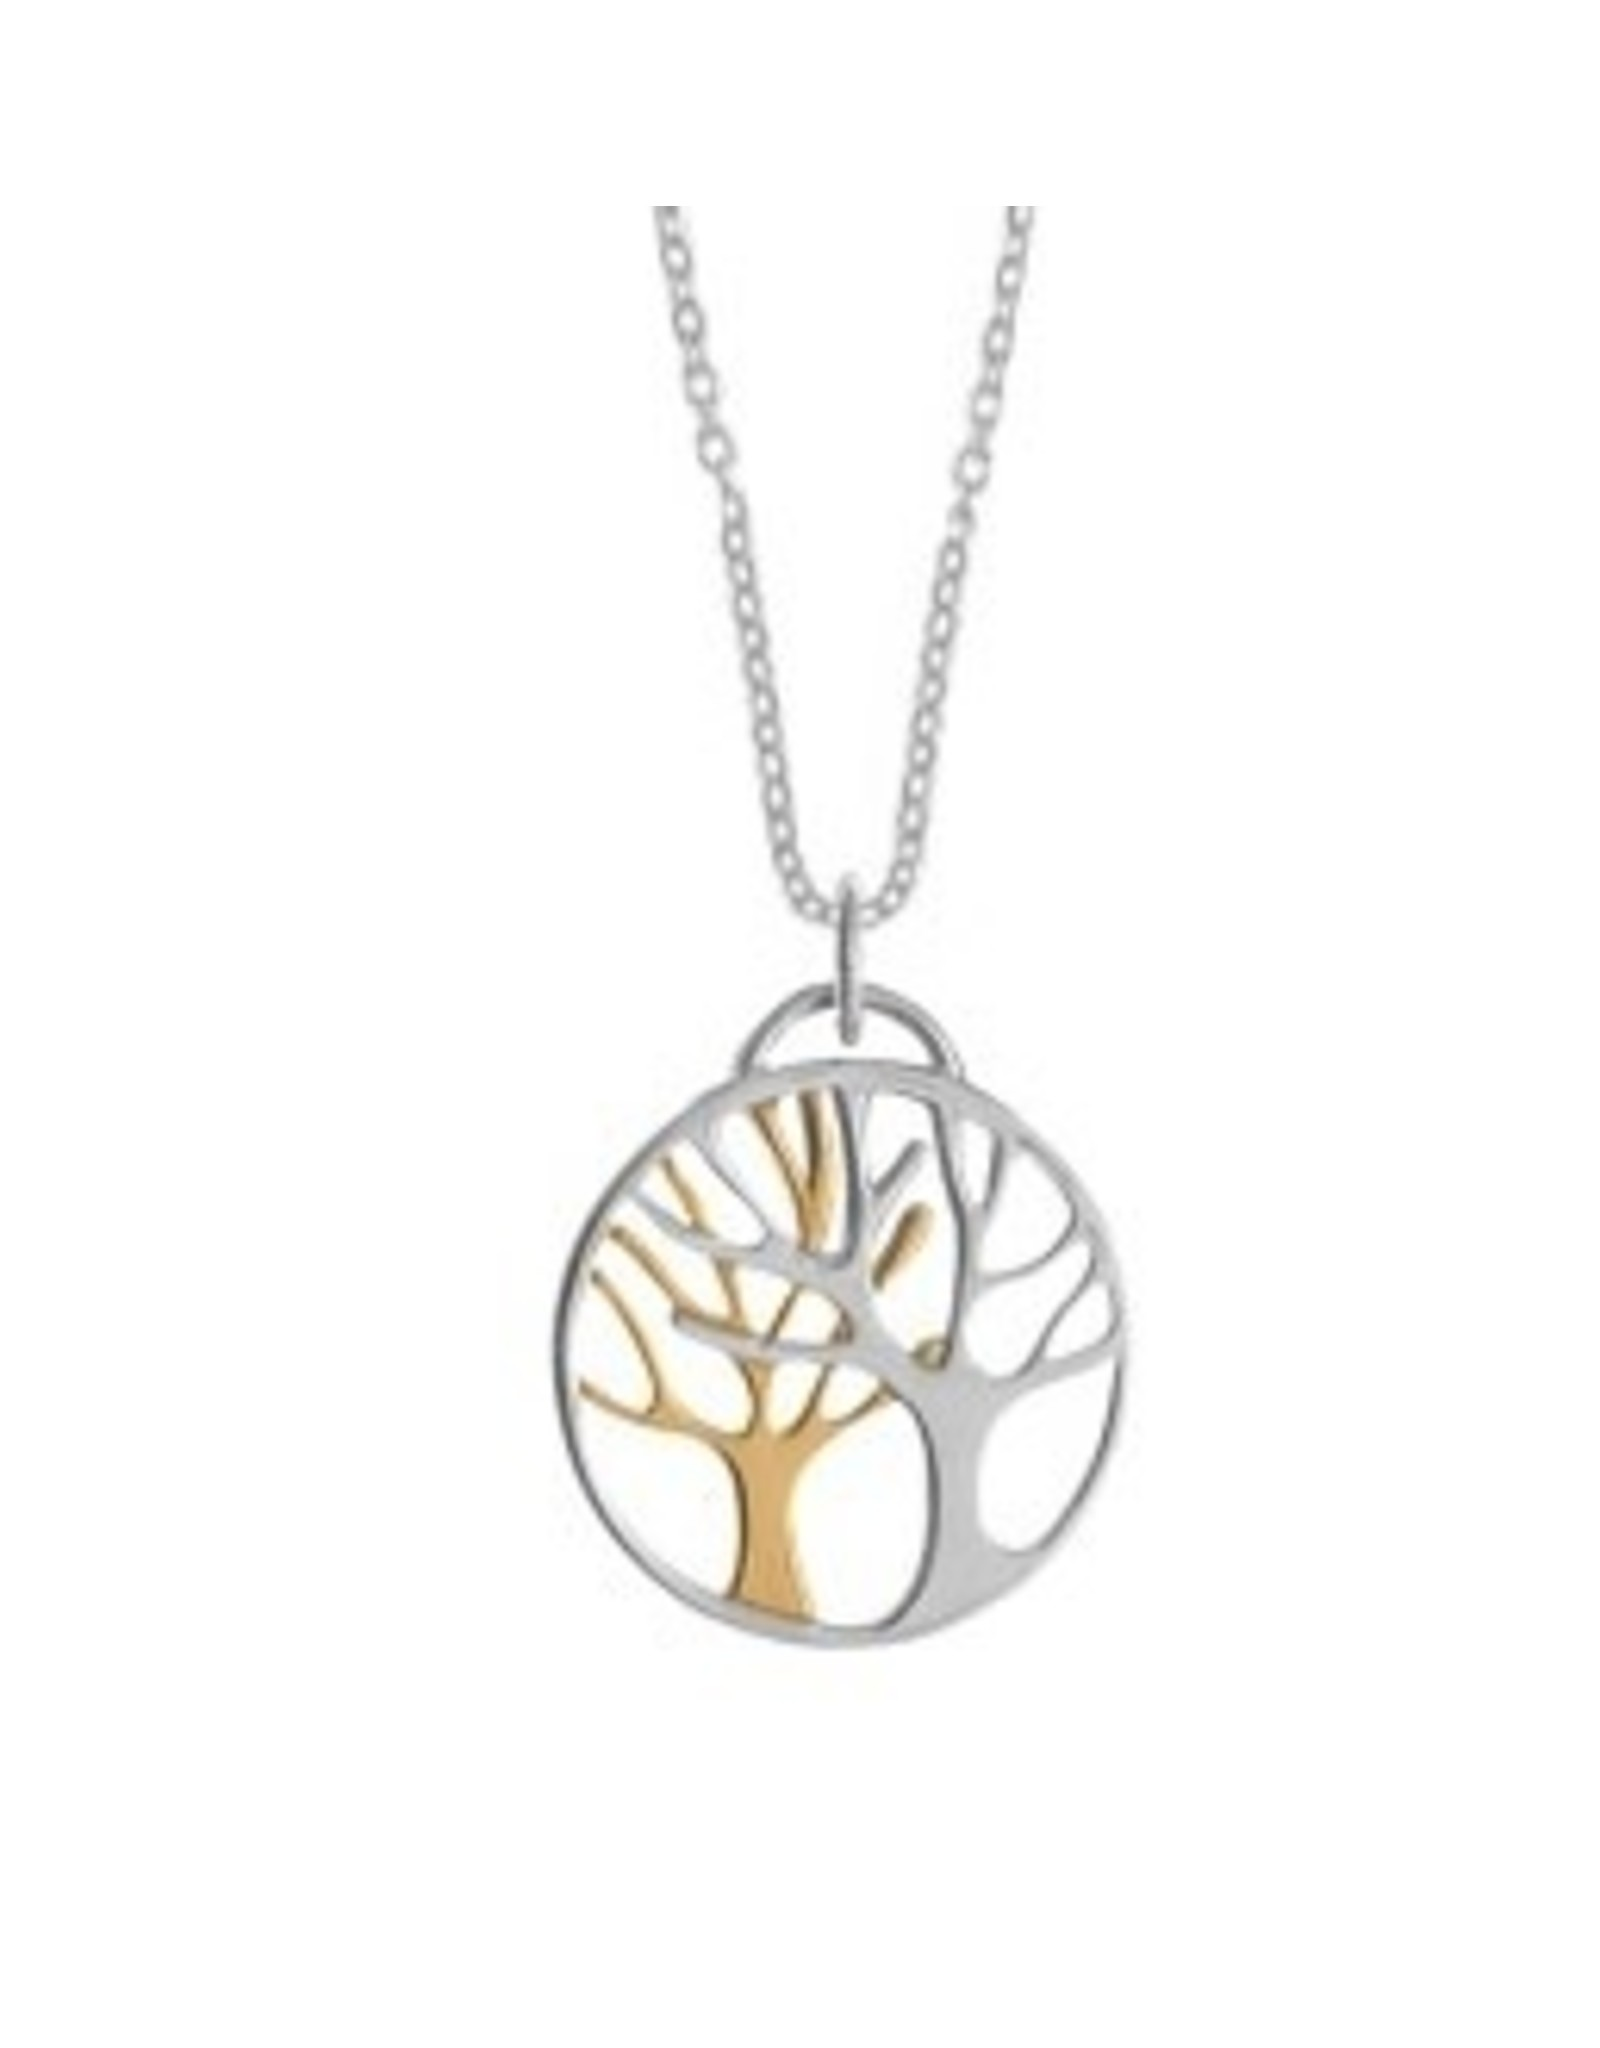 "Boma TREES NECKLACE 20"" GOLD VERMEIL SILVER"